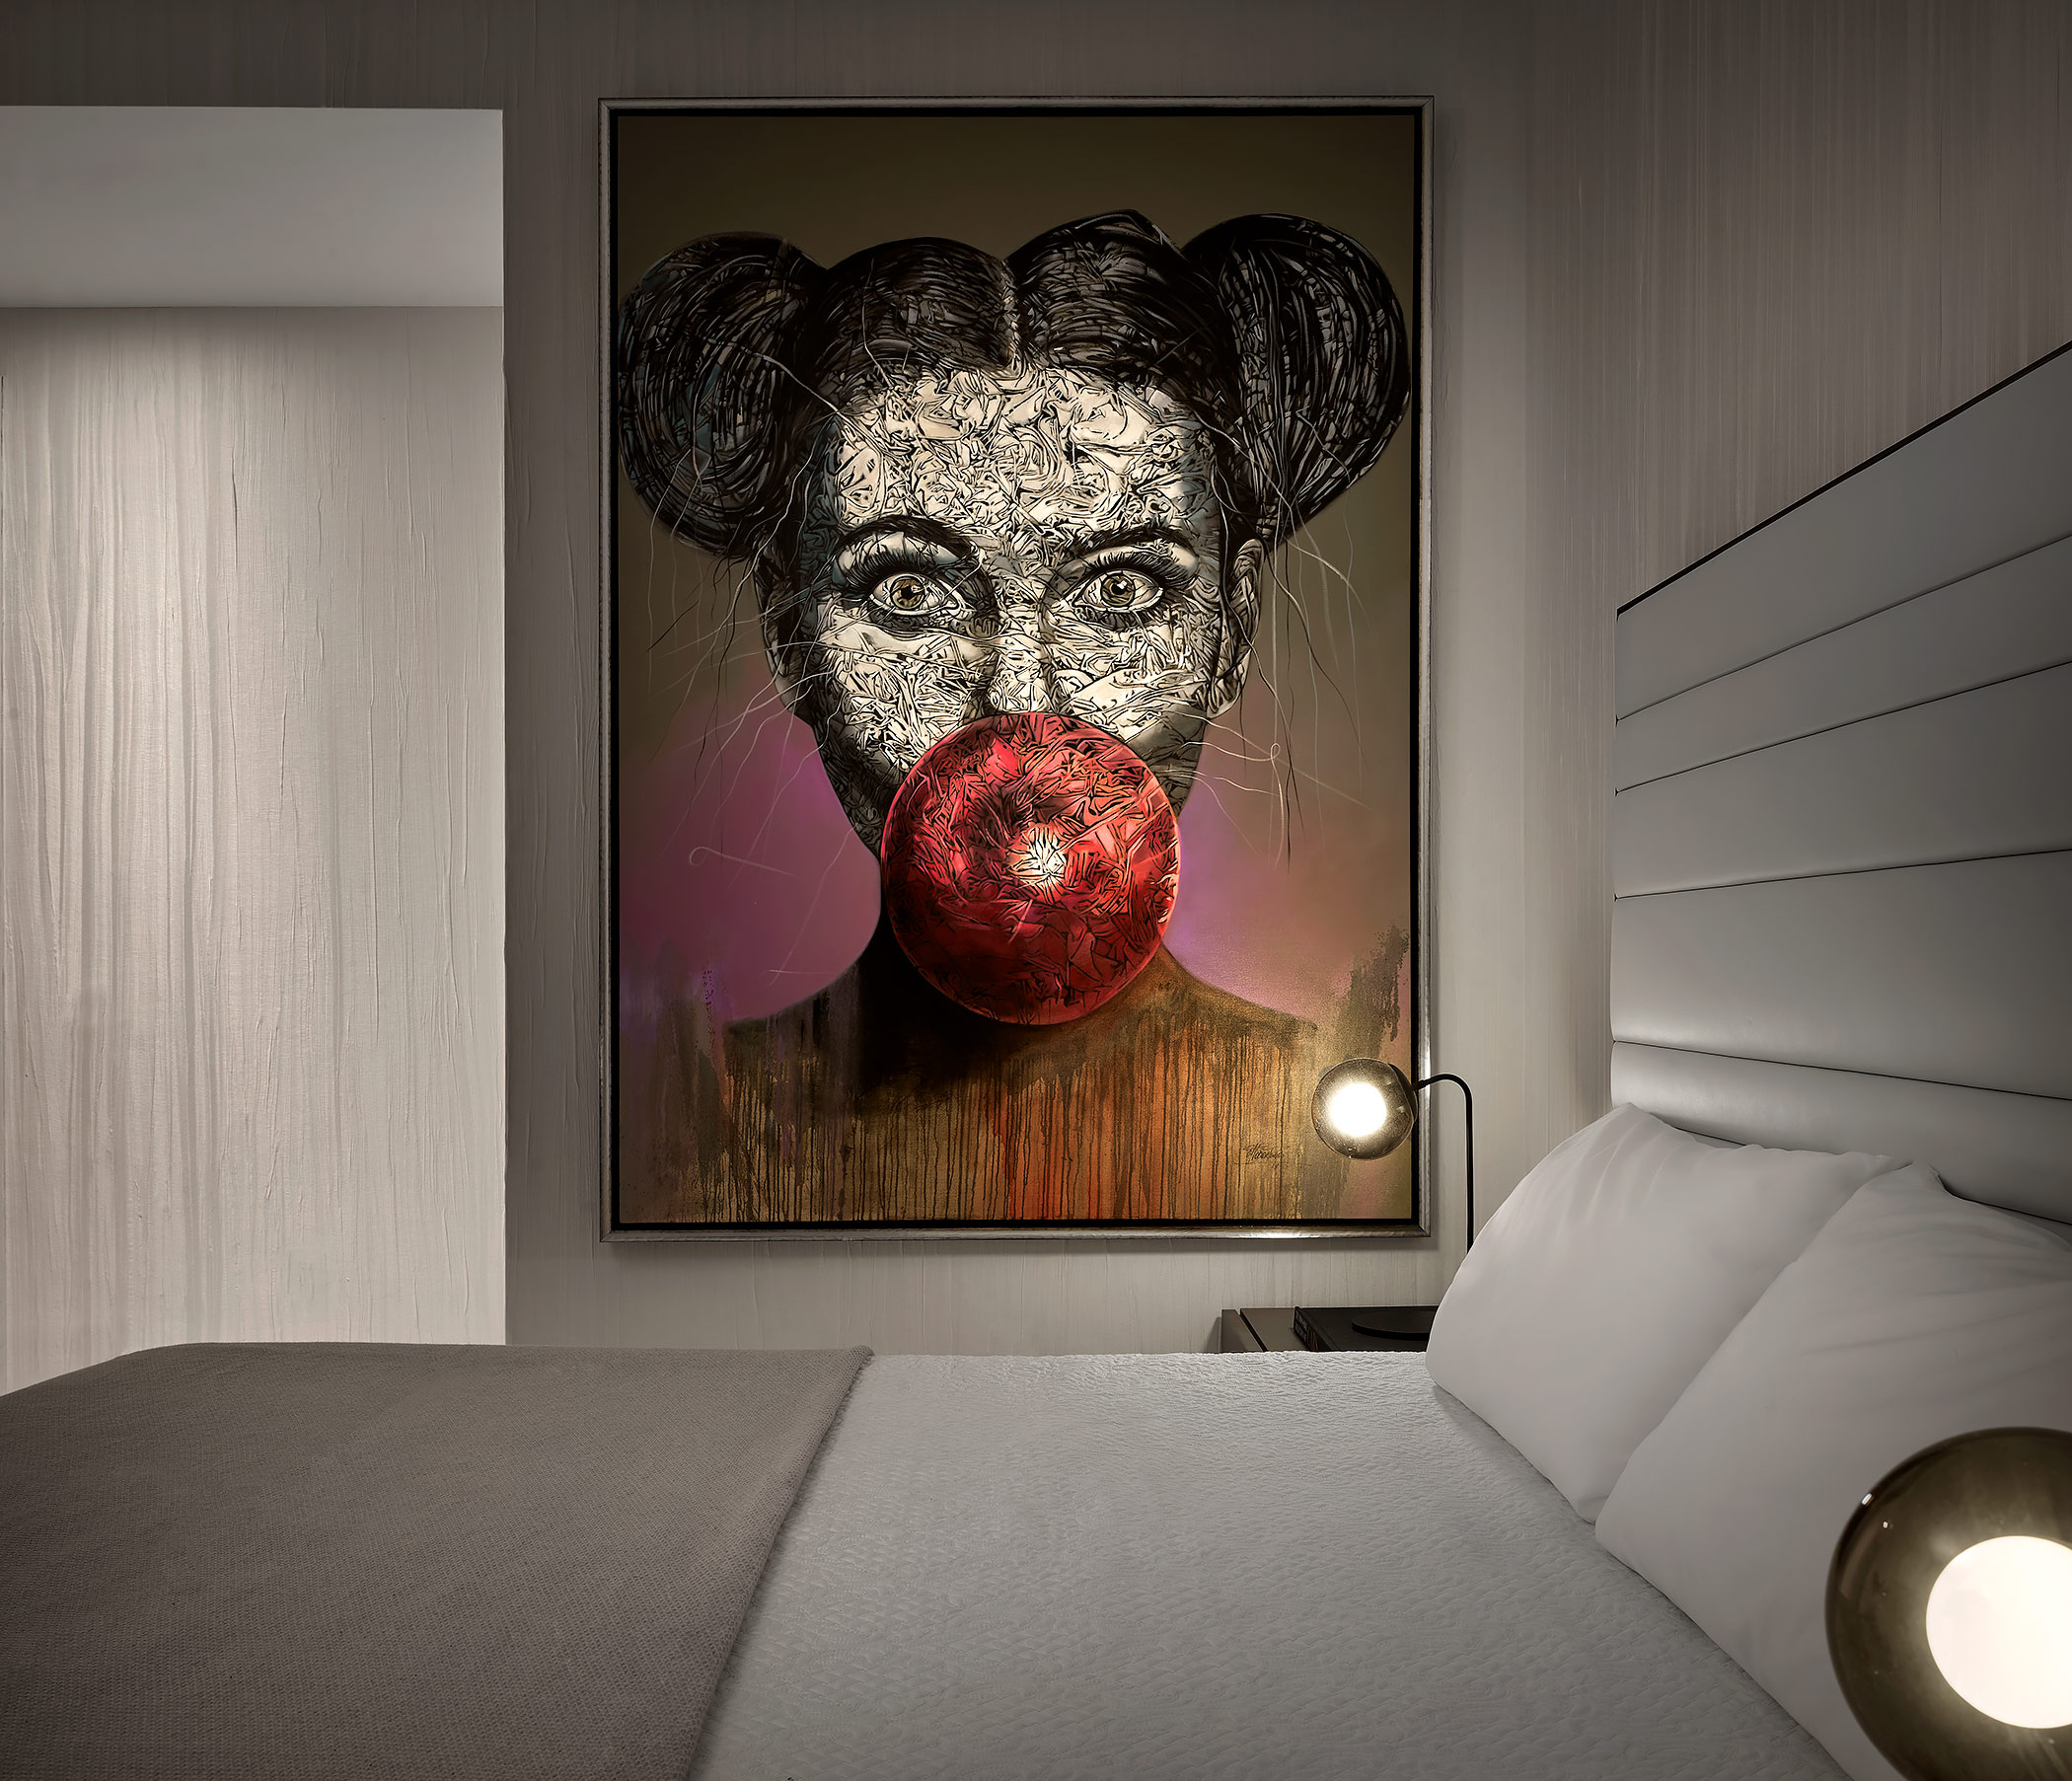 Interior-Decor-Bedroom-Detail-Pop-Art